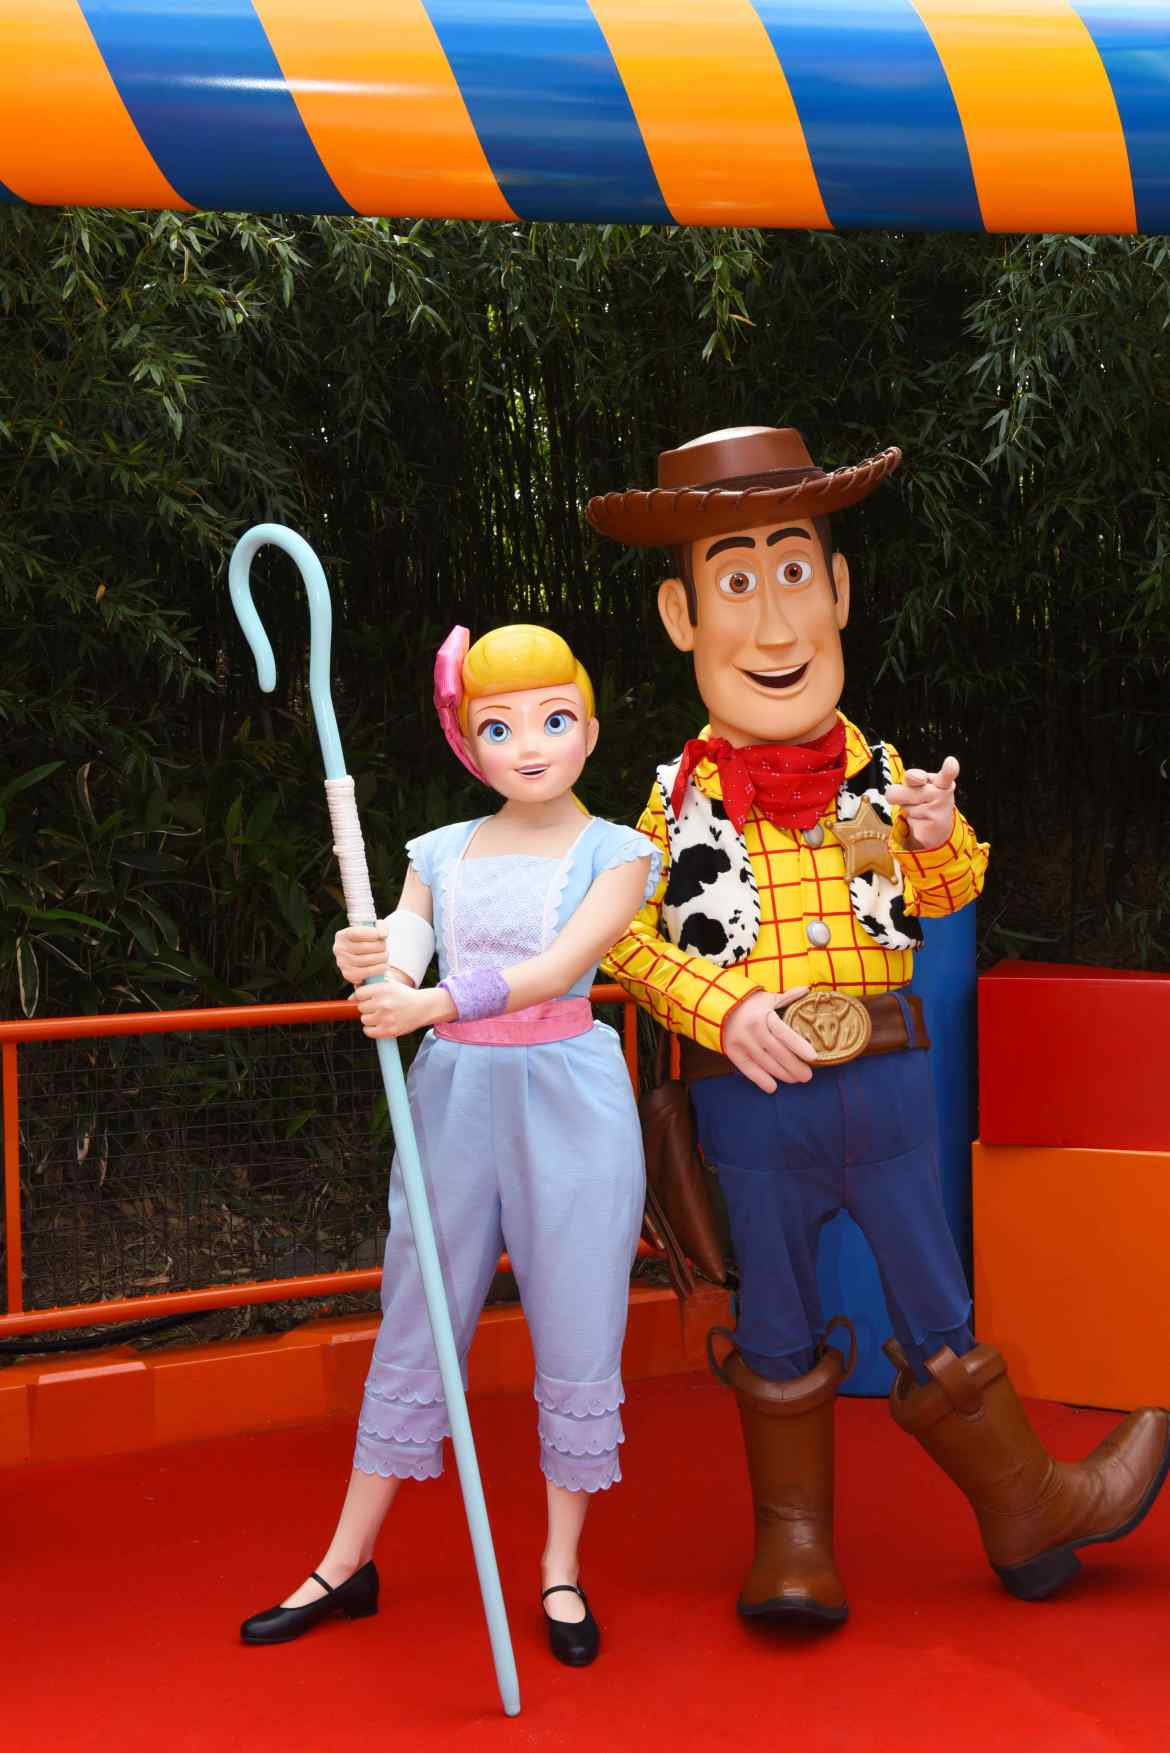 """First Look at """"Toy Story Play Days"""" at Disneyland Paris!"""